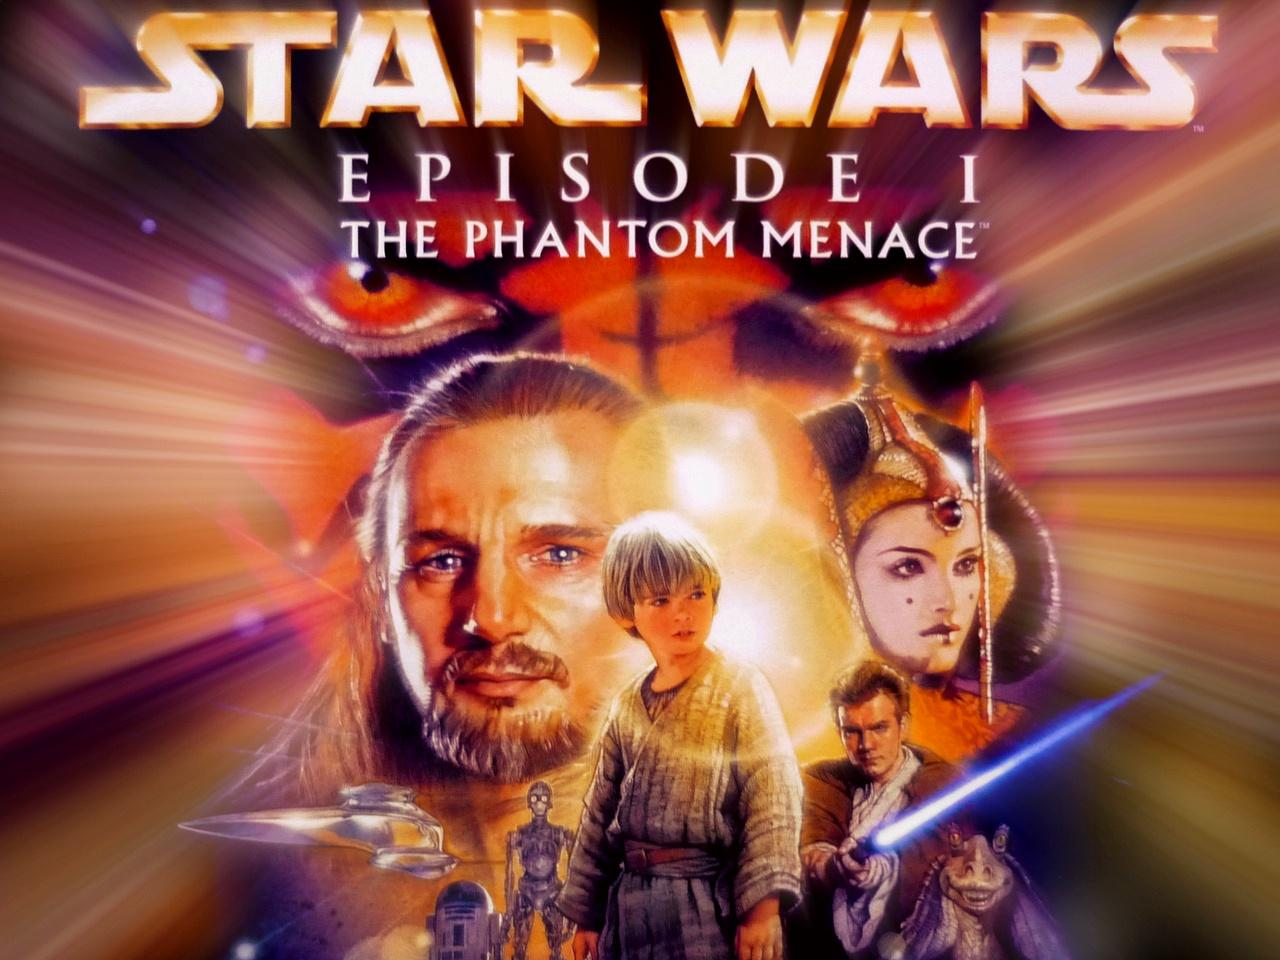 Star Wars I - Guerre Stellari Minaccia Fantasma - The Phantom Menace